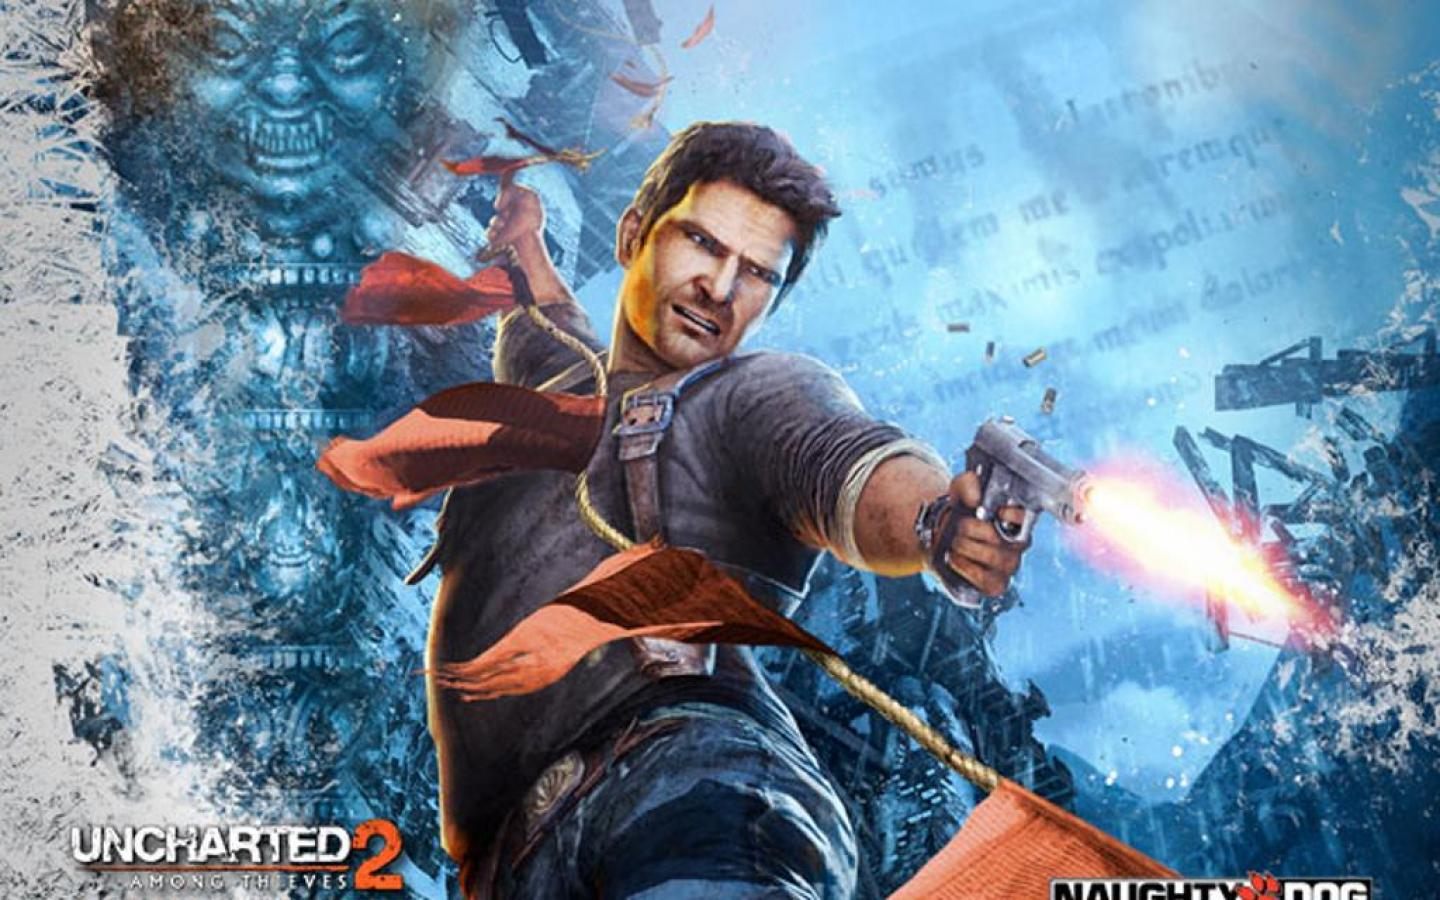 uncharted 2 among thieves wallpaper   87364   HQ Desktop Wallpapers 1440x900